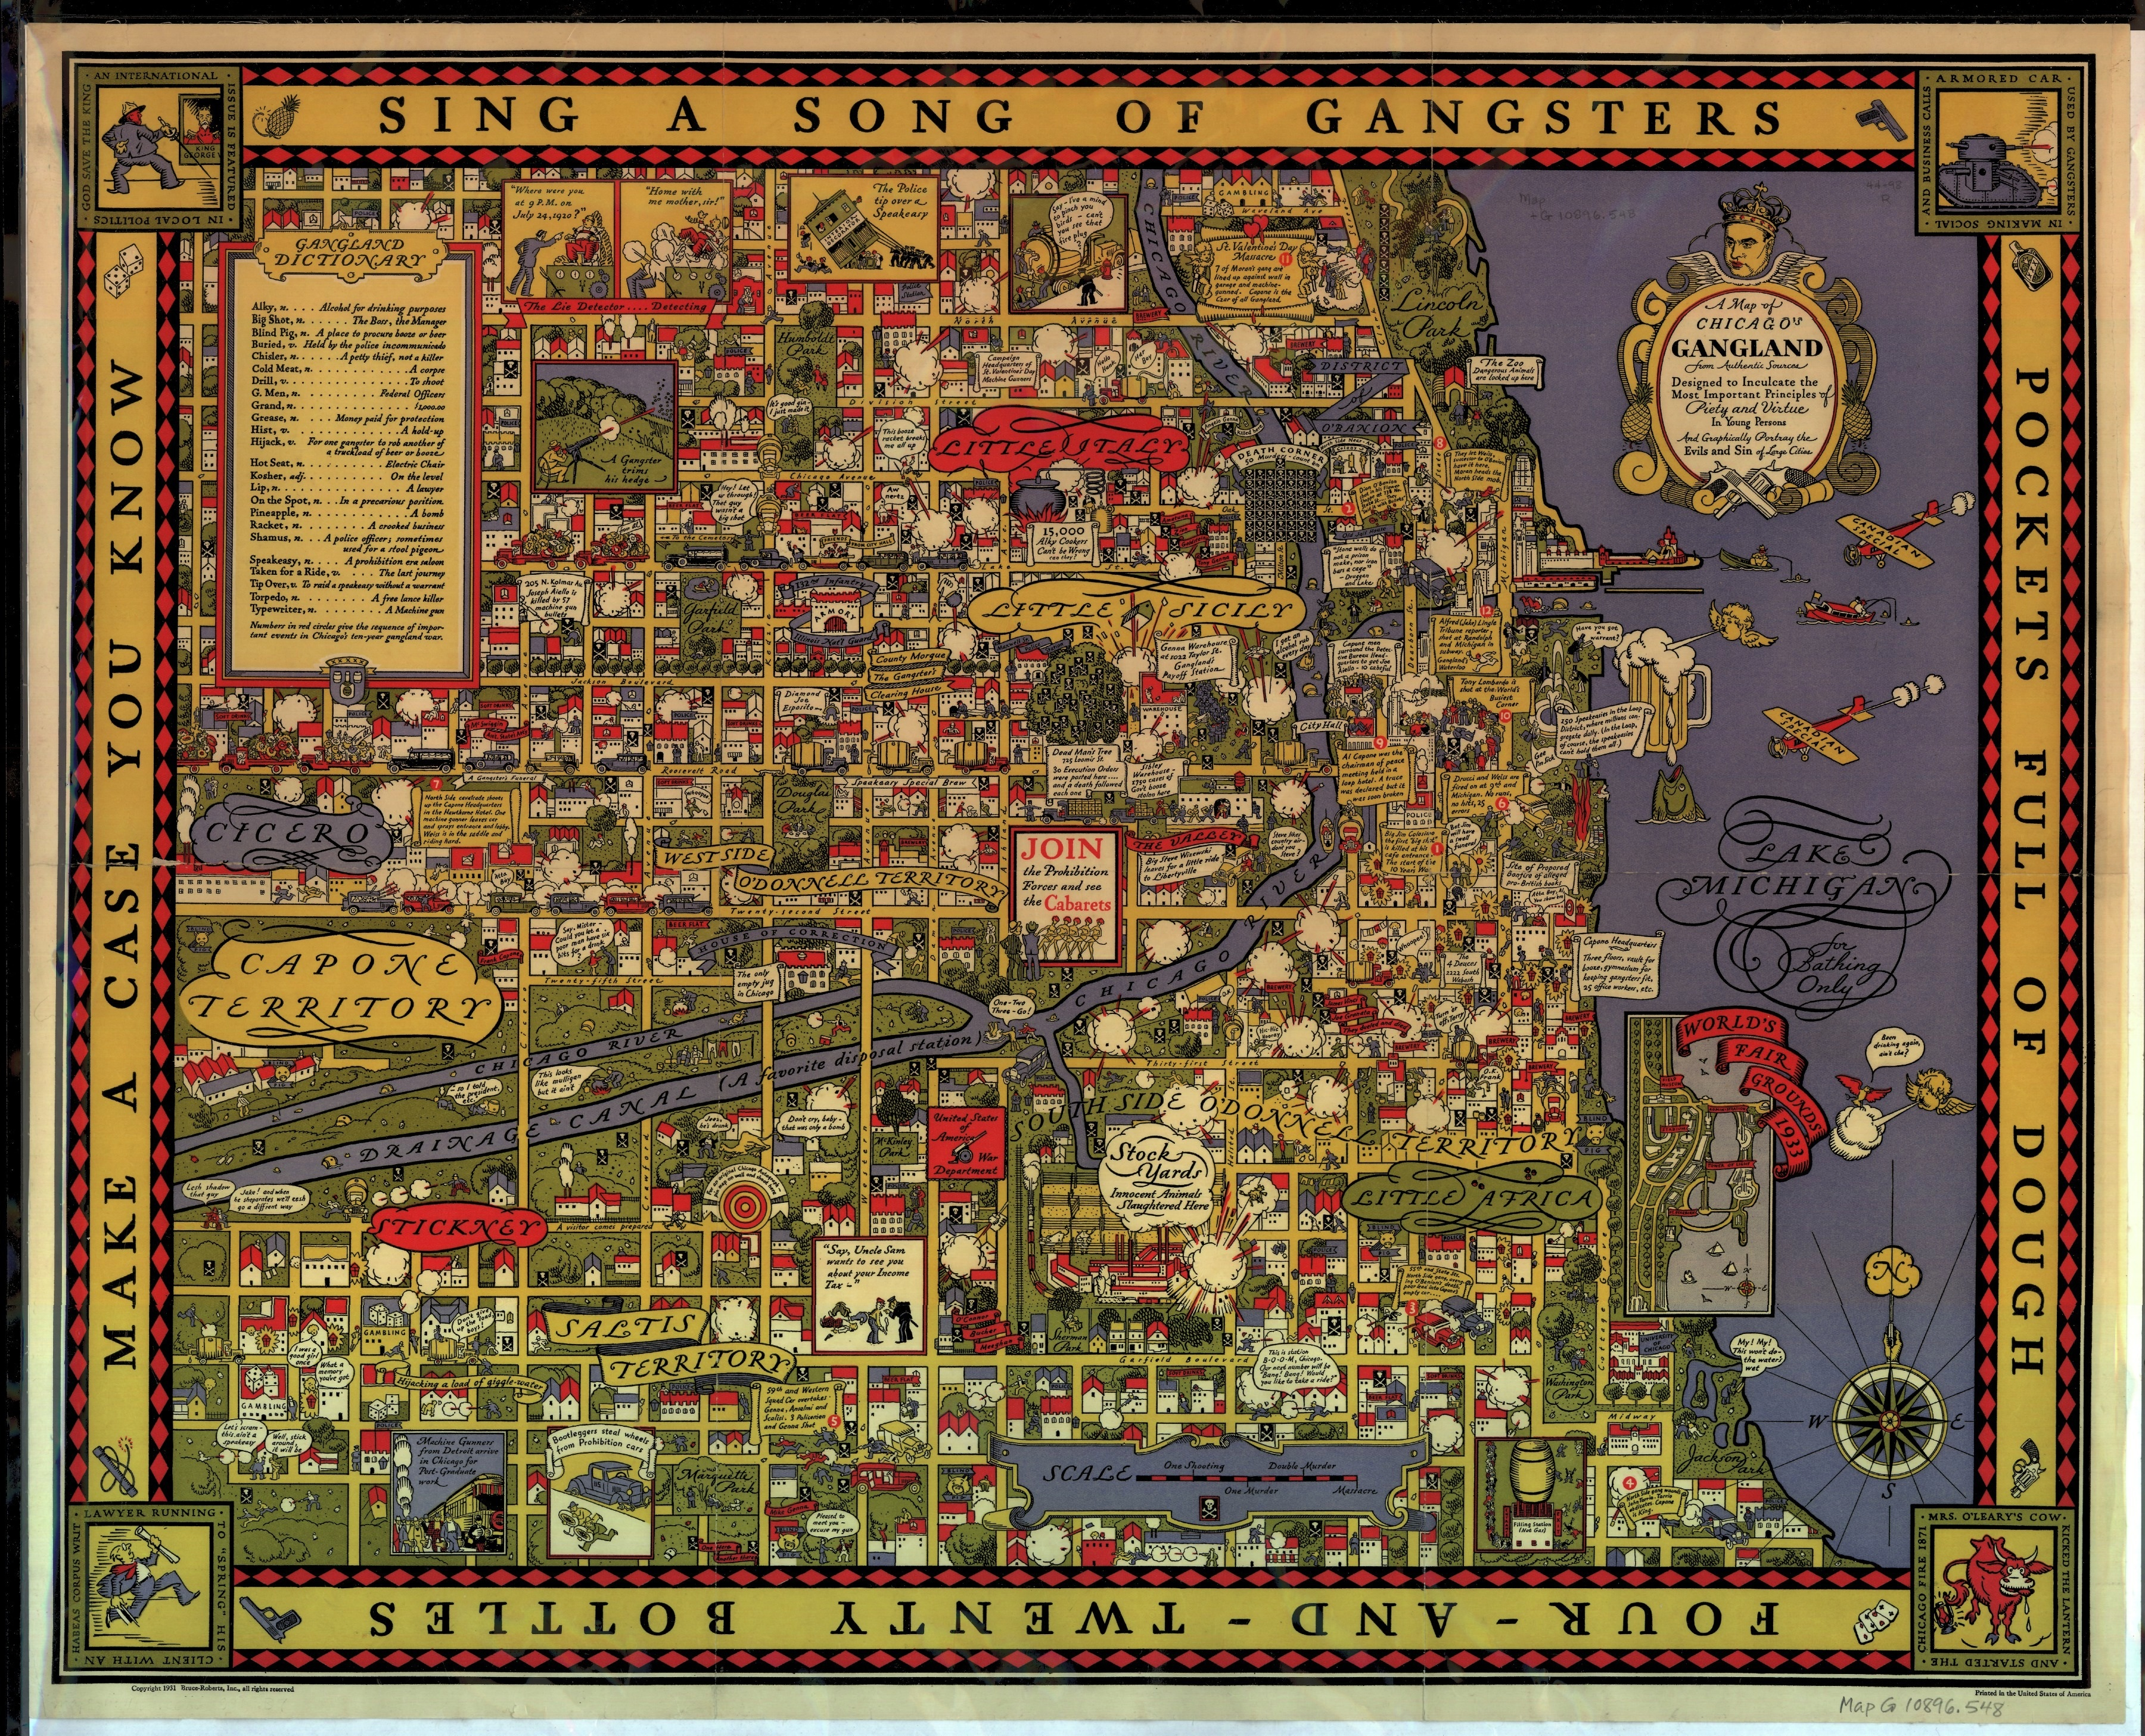 A Map of Chicago's Gangland: A Cheeky, Cartographic Look at ... Chicago Map Of The World On With It on italy on world map, bangkok on world map, dead sea on world map, amazon river on world map, washington dc on world map, vienna on world map, 1893 chicago world's fair map, cape town world map, chicago on north america map, new york city on world map, moscow on world map, istanbul on world map, england on world map, chicago on the water, london on world map, madrid world map, chicago on state map, chicago on usa map, chicago on map of world, hawaii on world map,